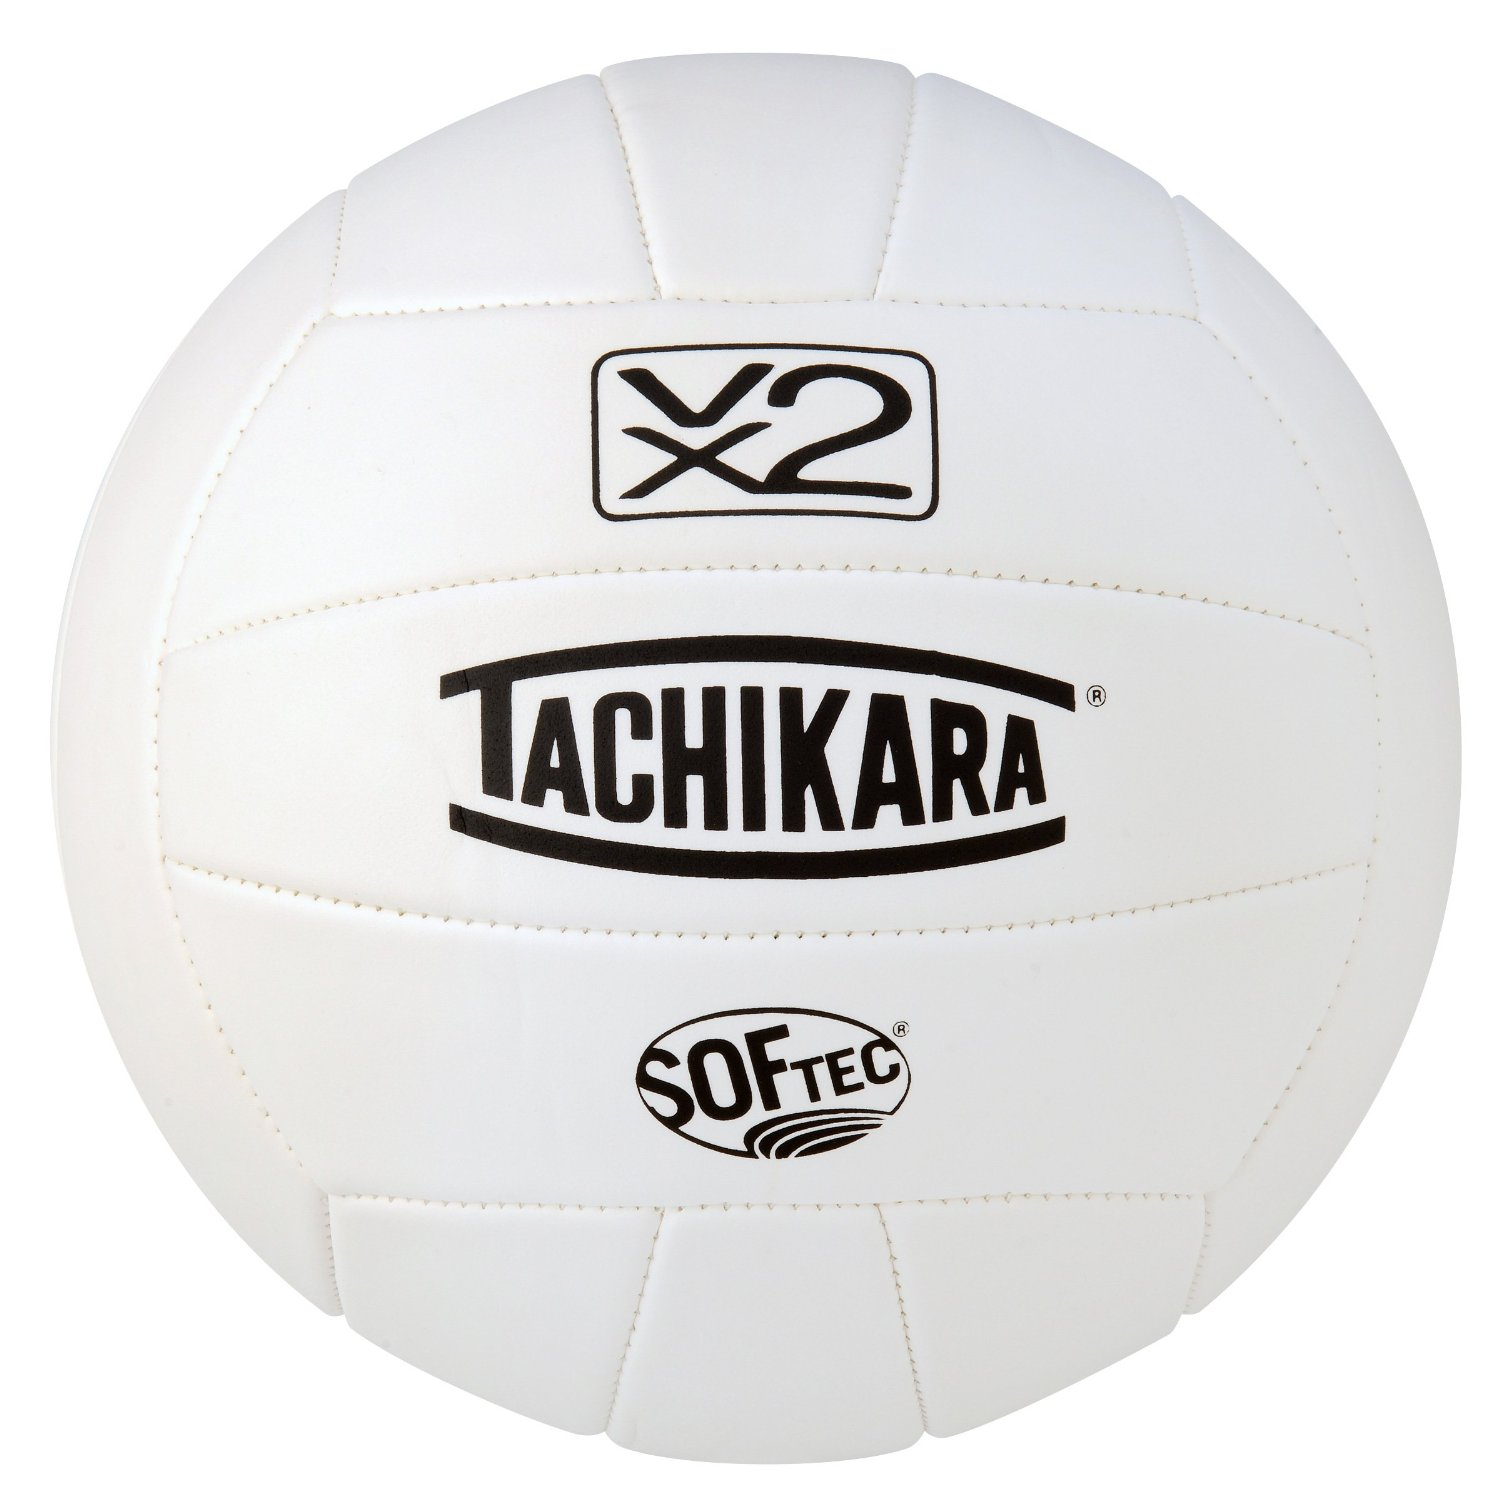 VX2W Tachikara Softec Foam-Backed Panel Volleyball - White MAIN